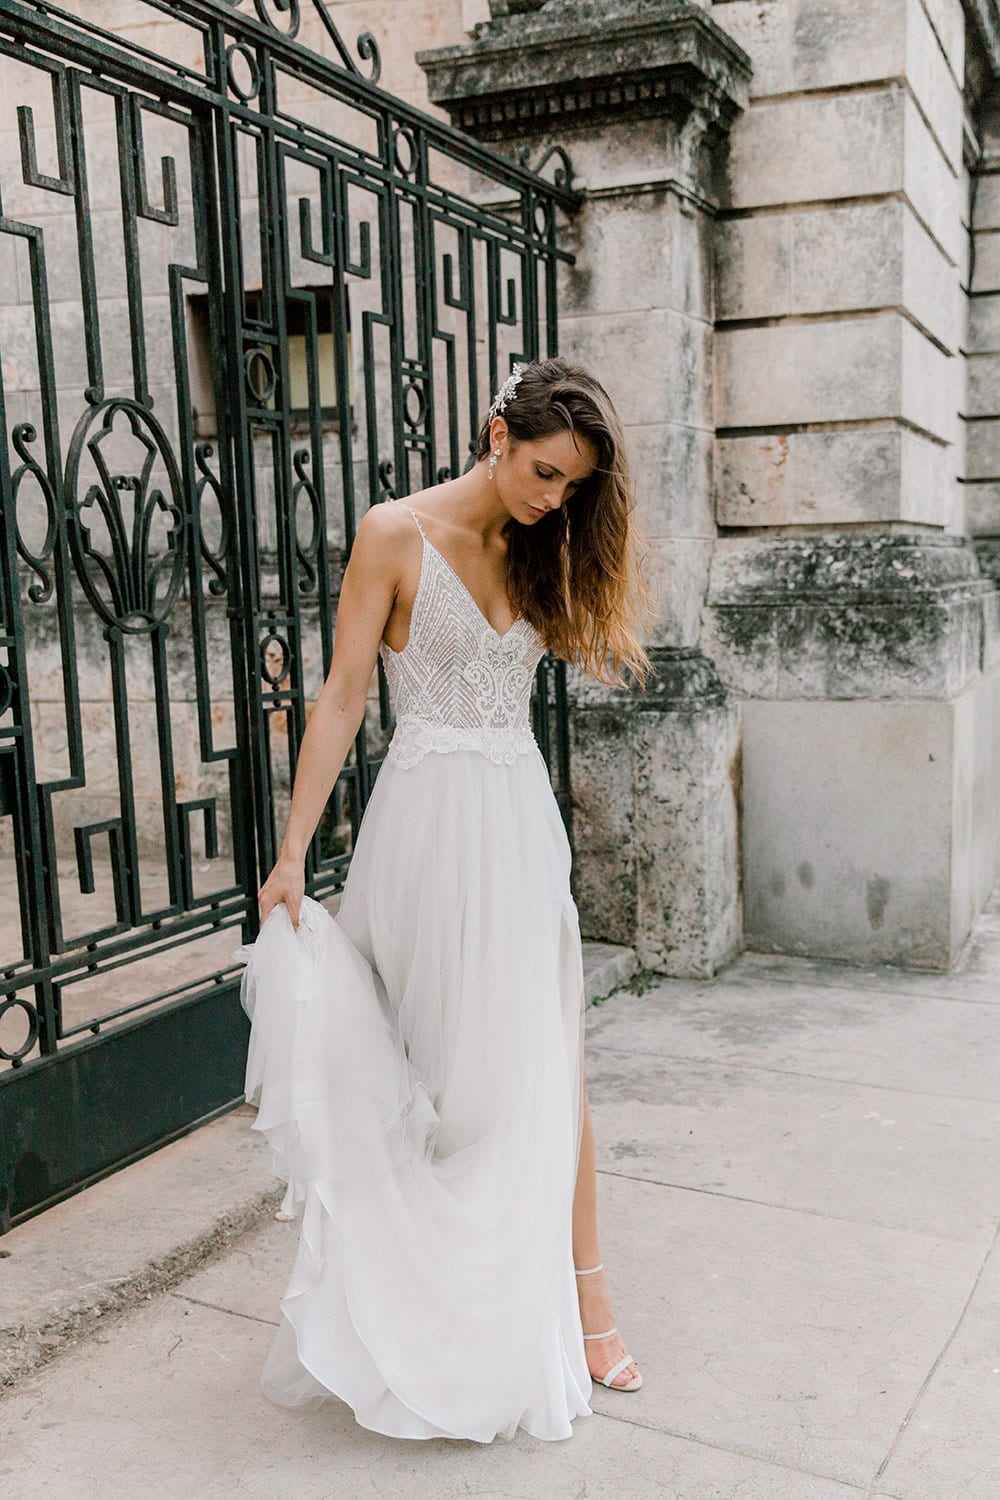 Model wearing Vinka Design Lucia Wedding Dress with Fitted Beaded Bodice, Tulle Skirt and Split in front of old iron gate in Havana